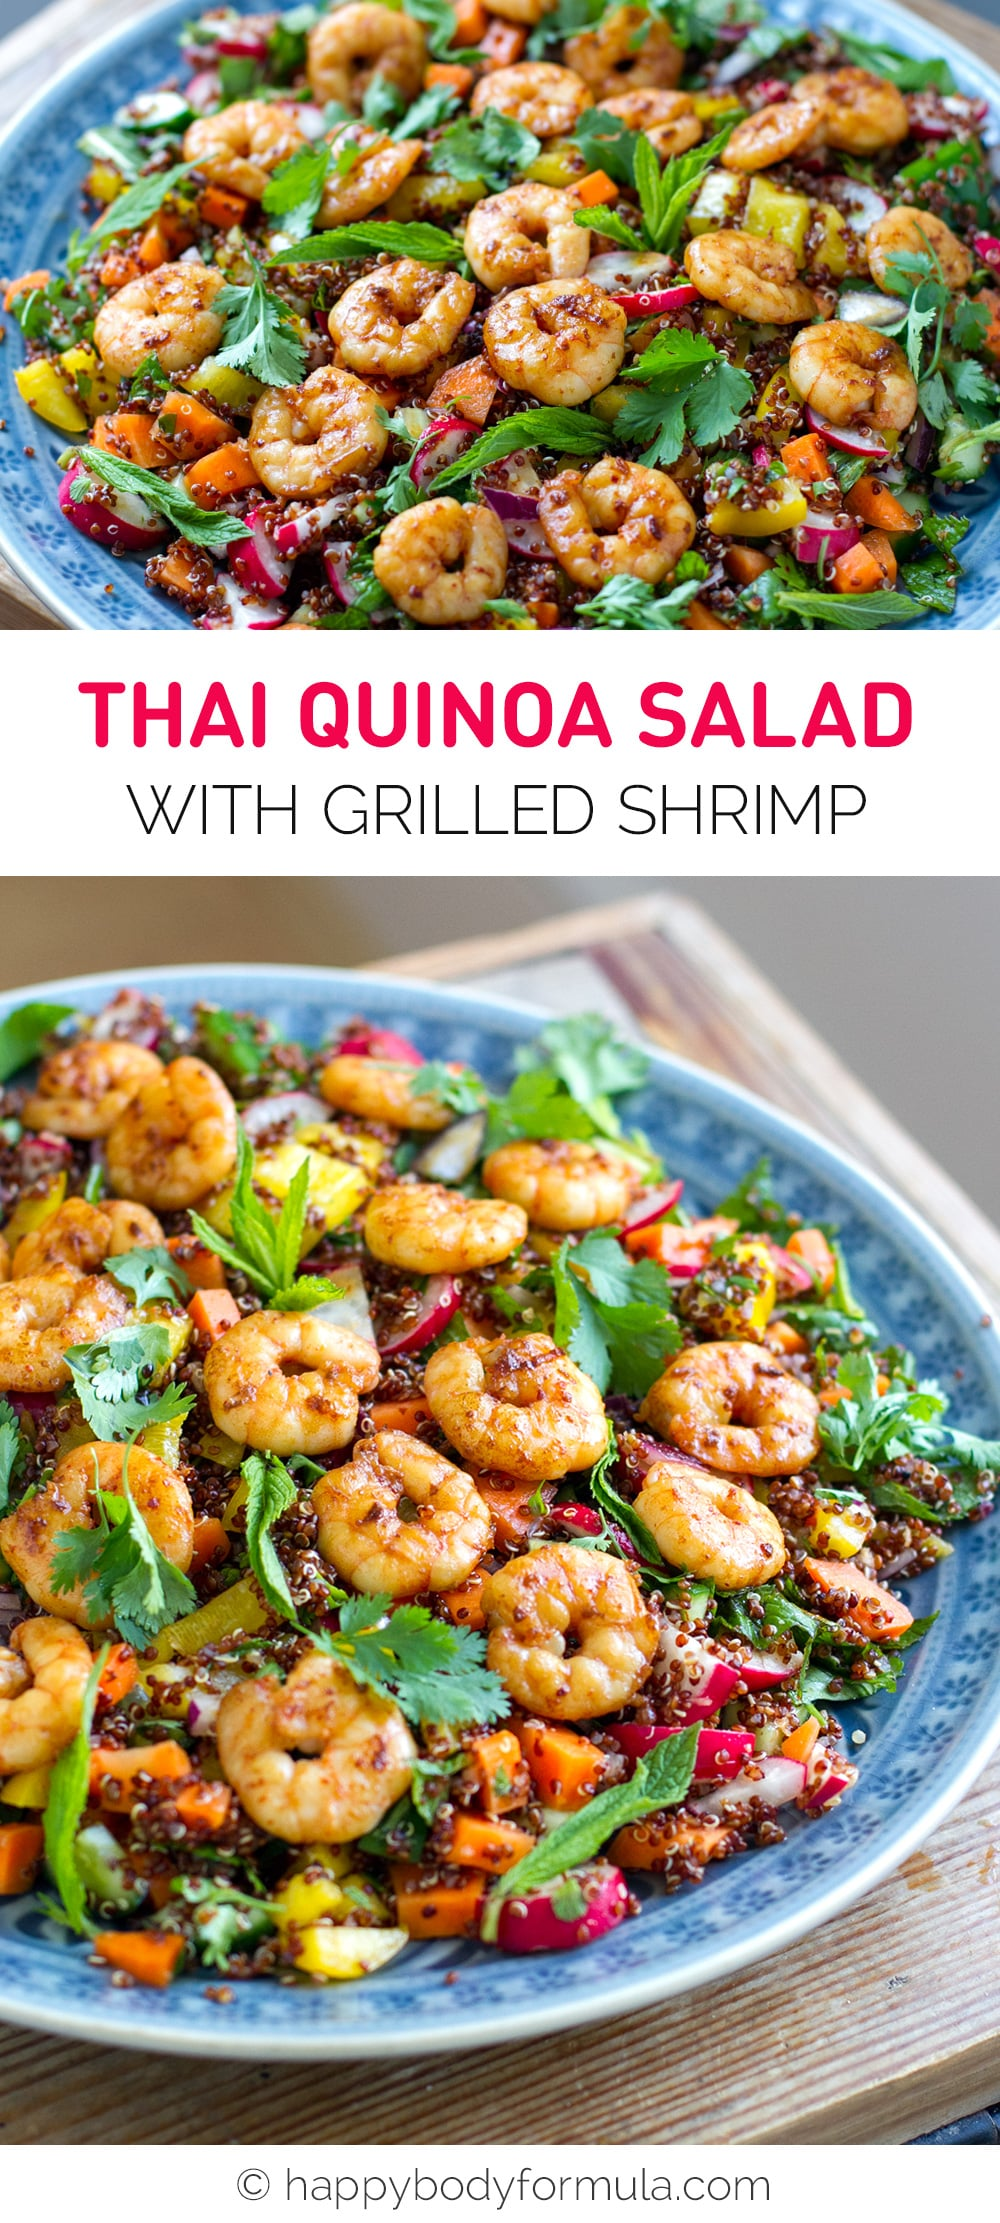 Thai Quinoa Salad With Grilled Shrimp